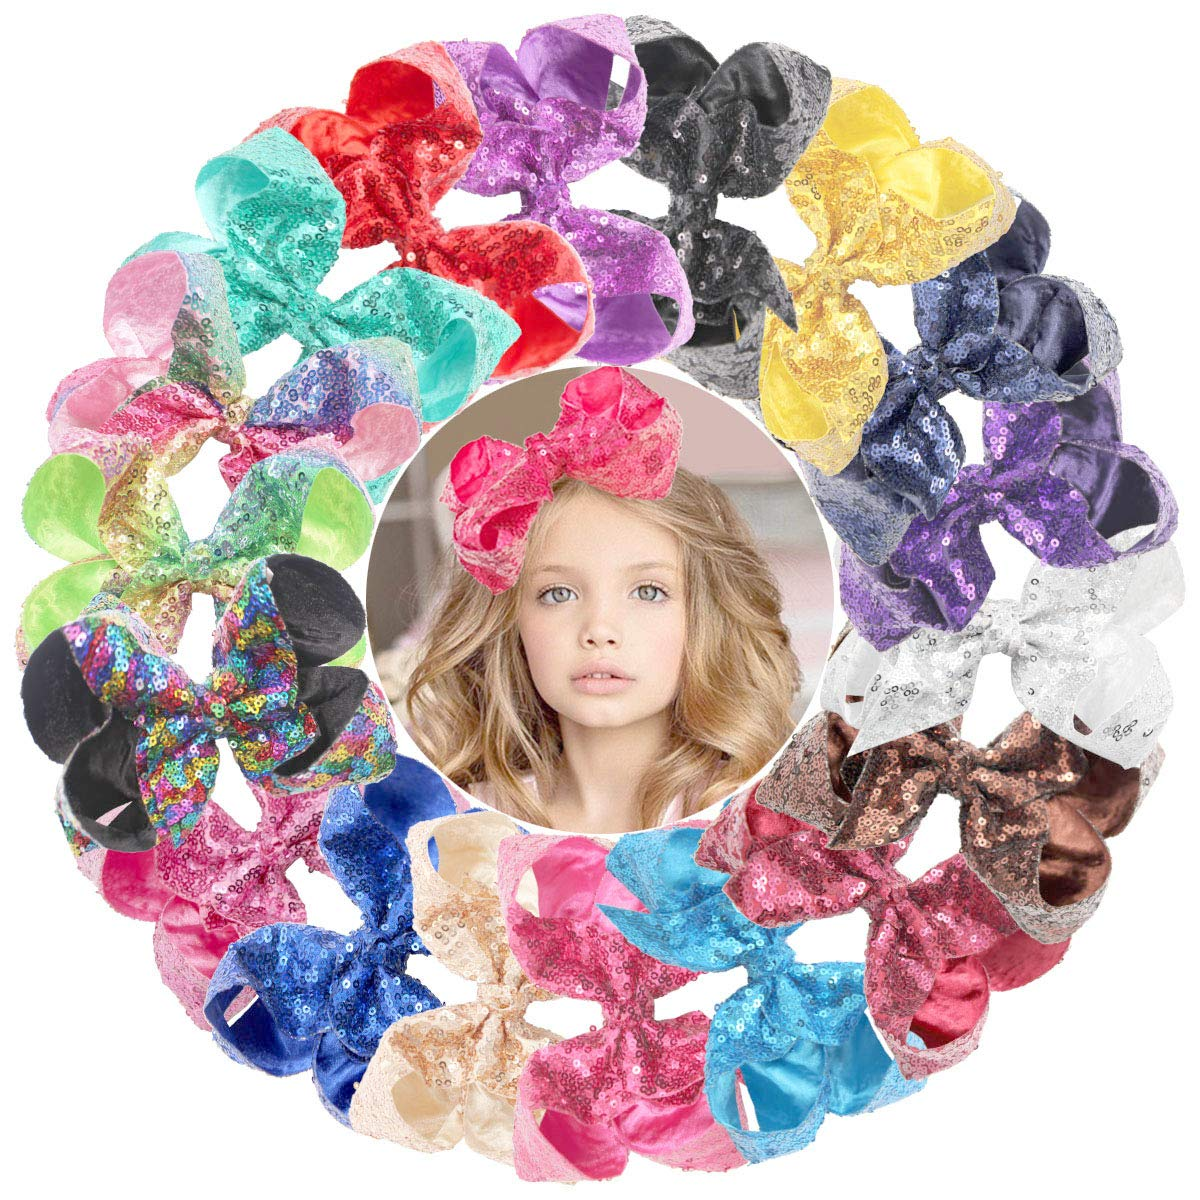 DeD 18 Pieces Glitter 6 Inch Max Popular brand 42% OFF Hair Big Clips Sequins Bows Rainbow